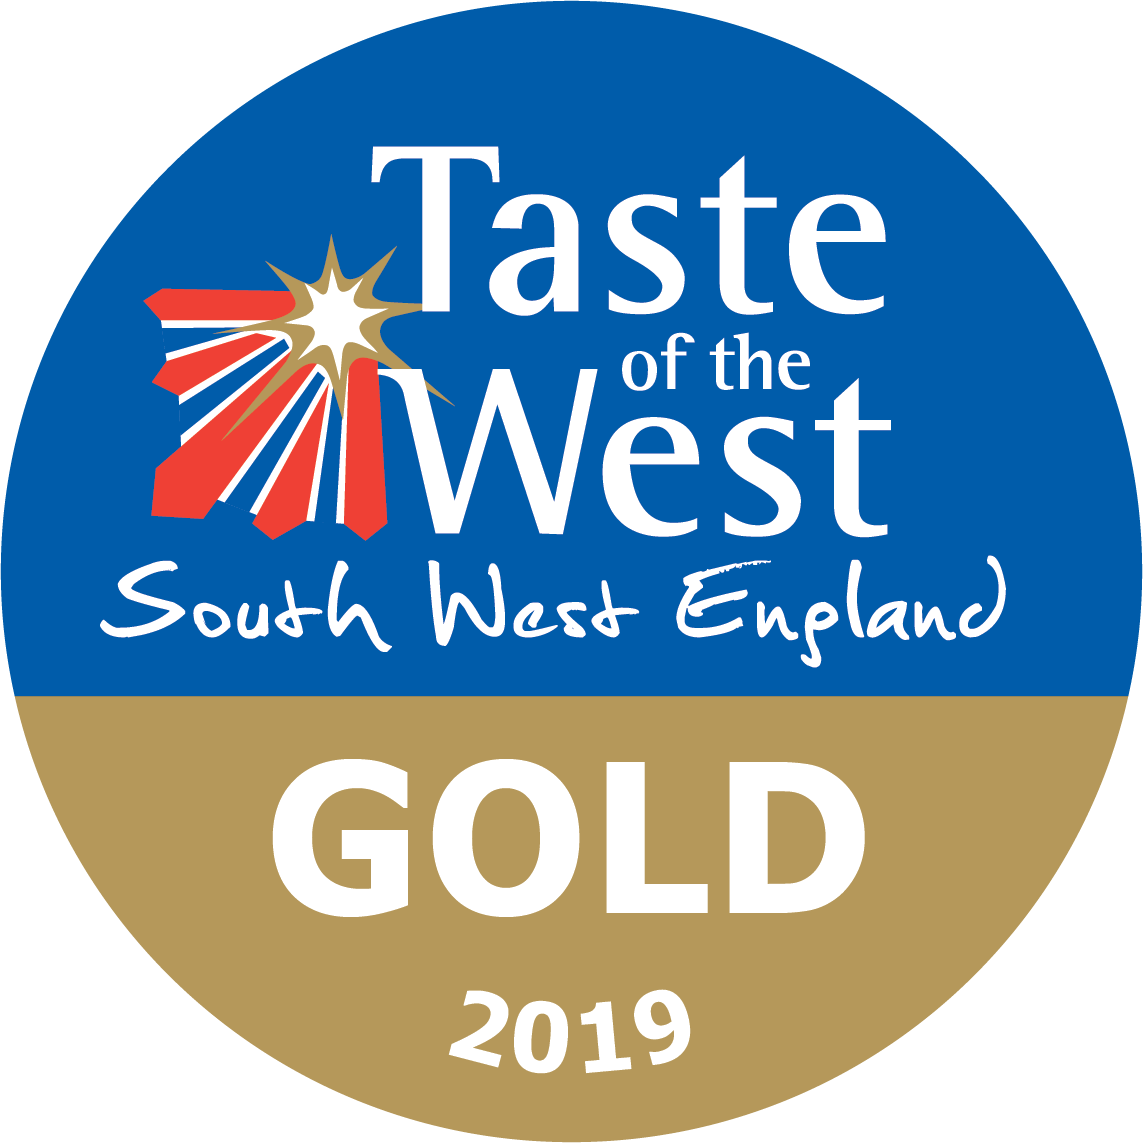 2019 Gold Taste of the West Award